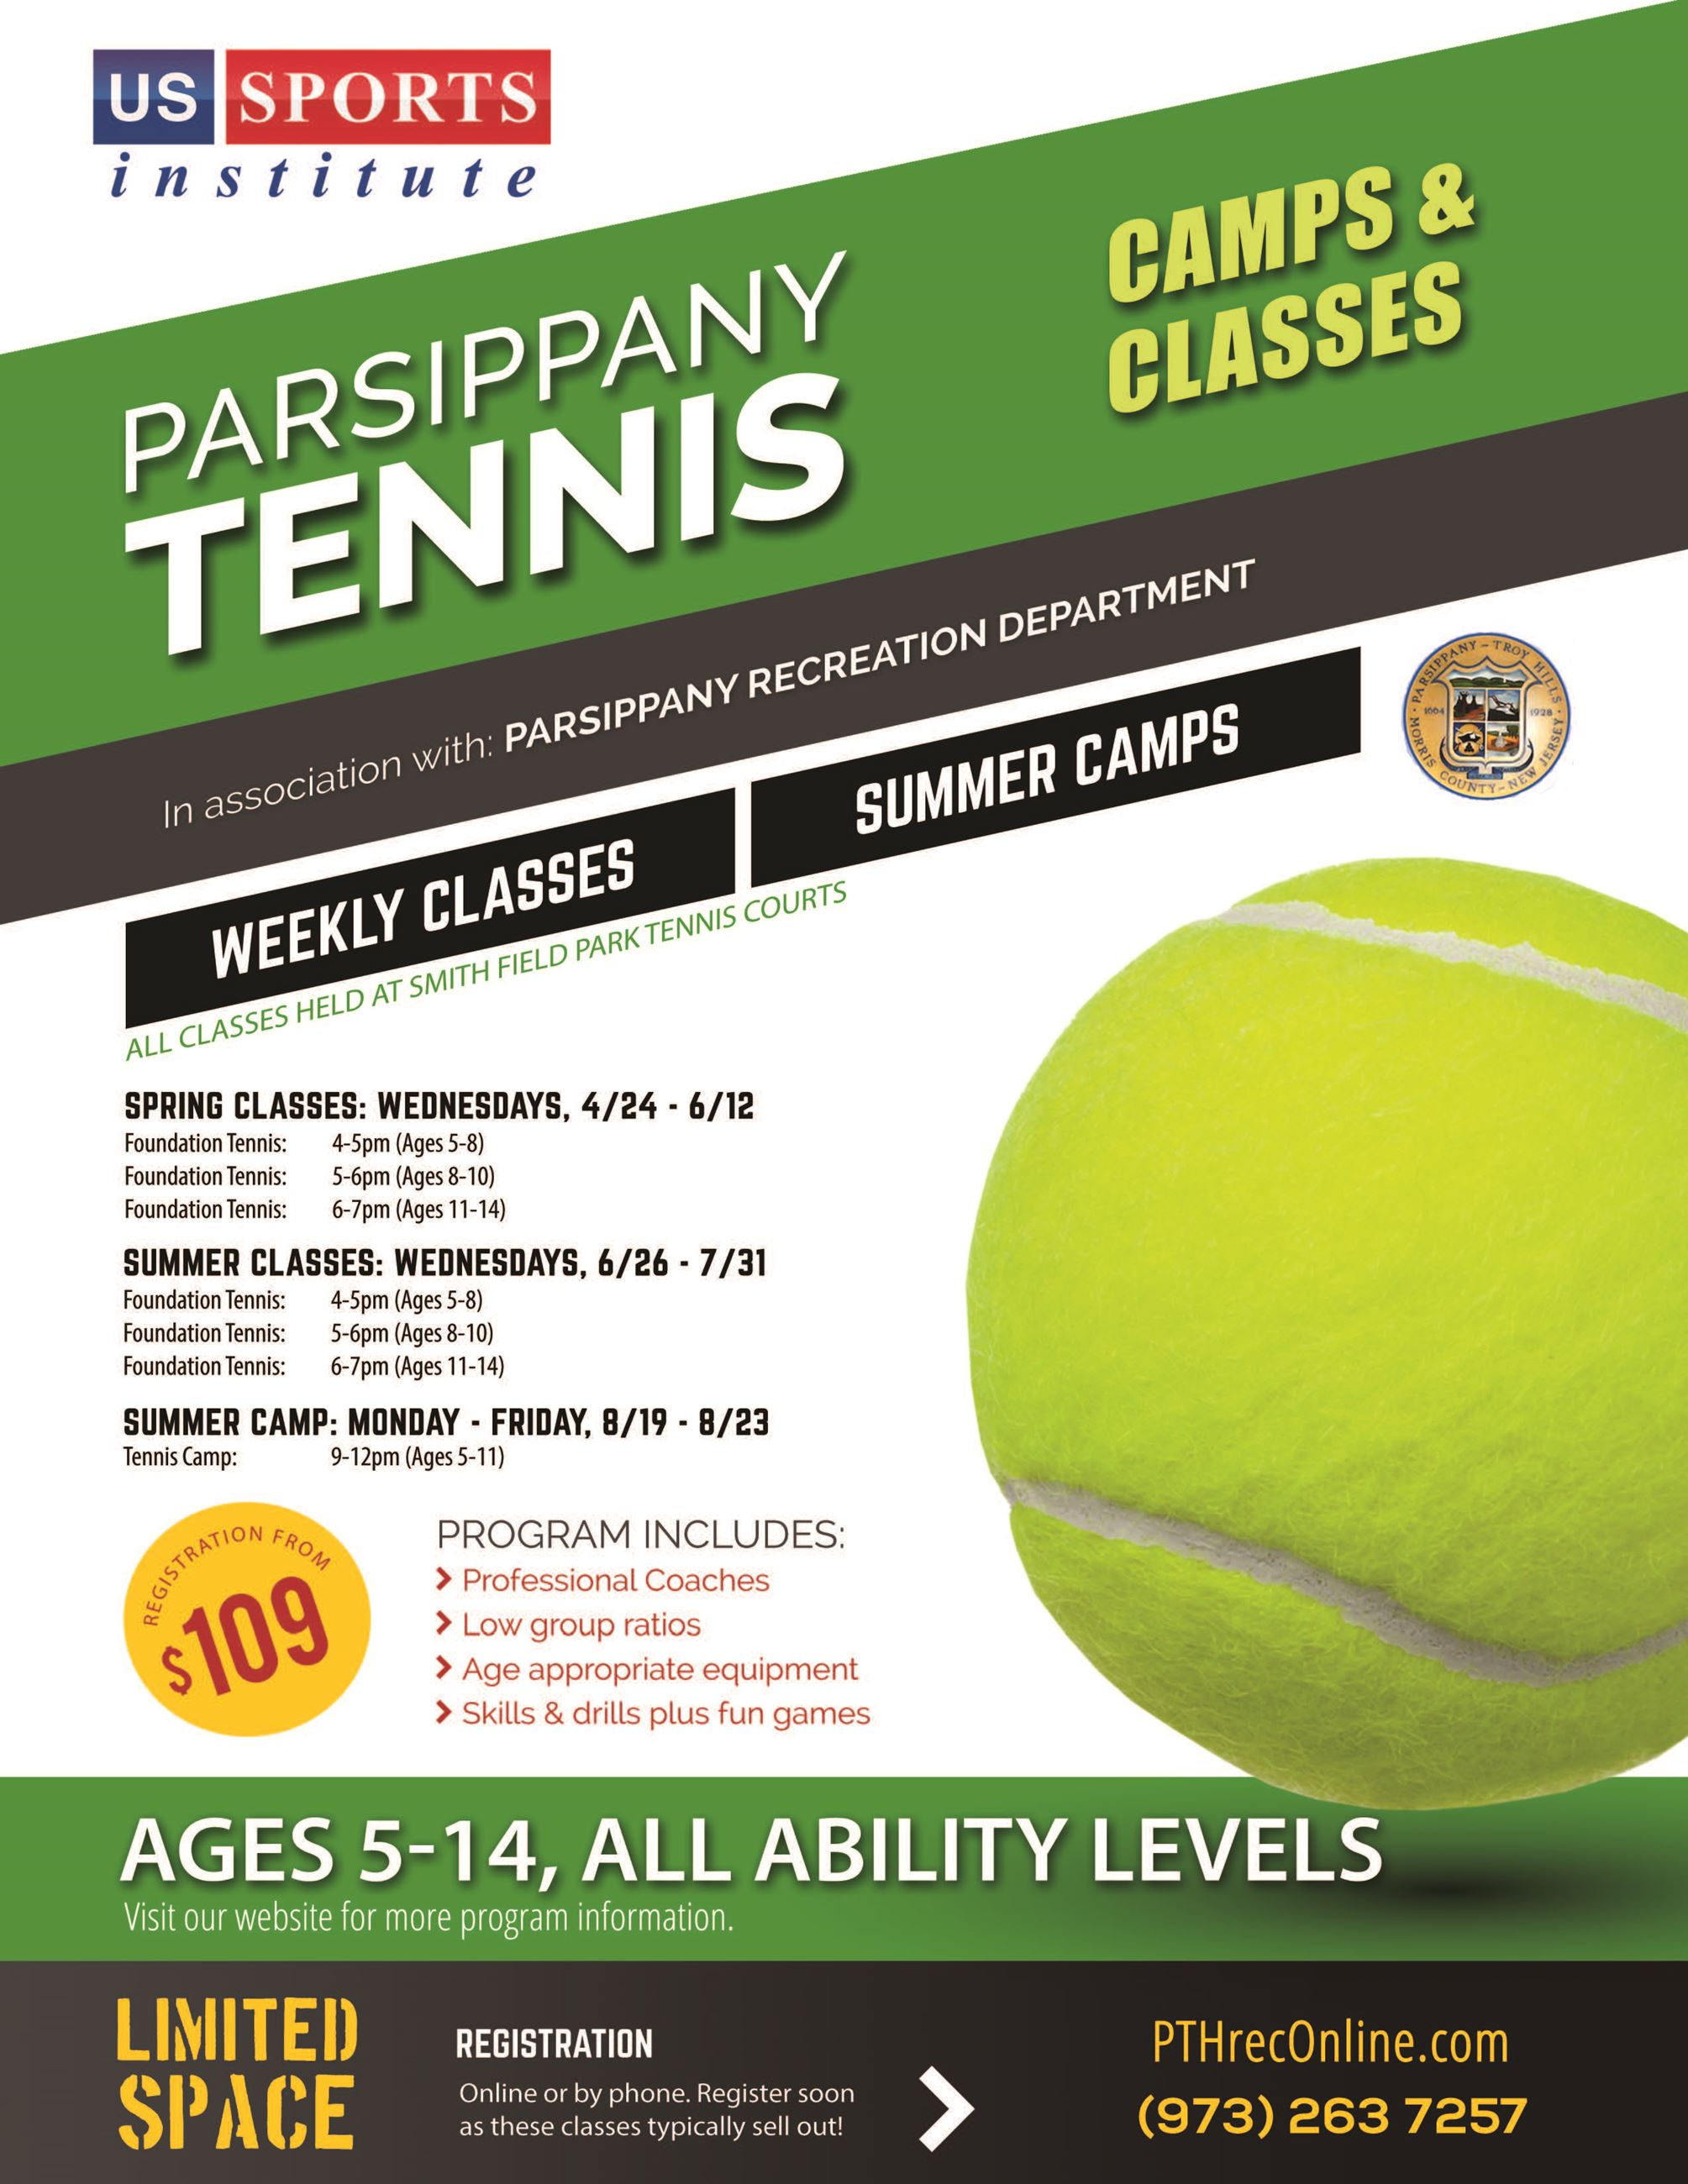 USSI Tennis Classes